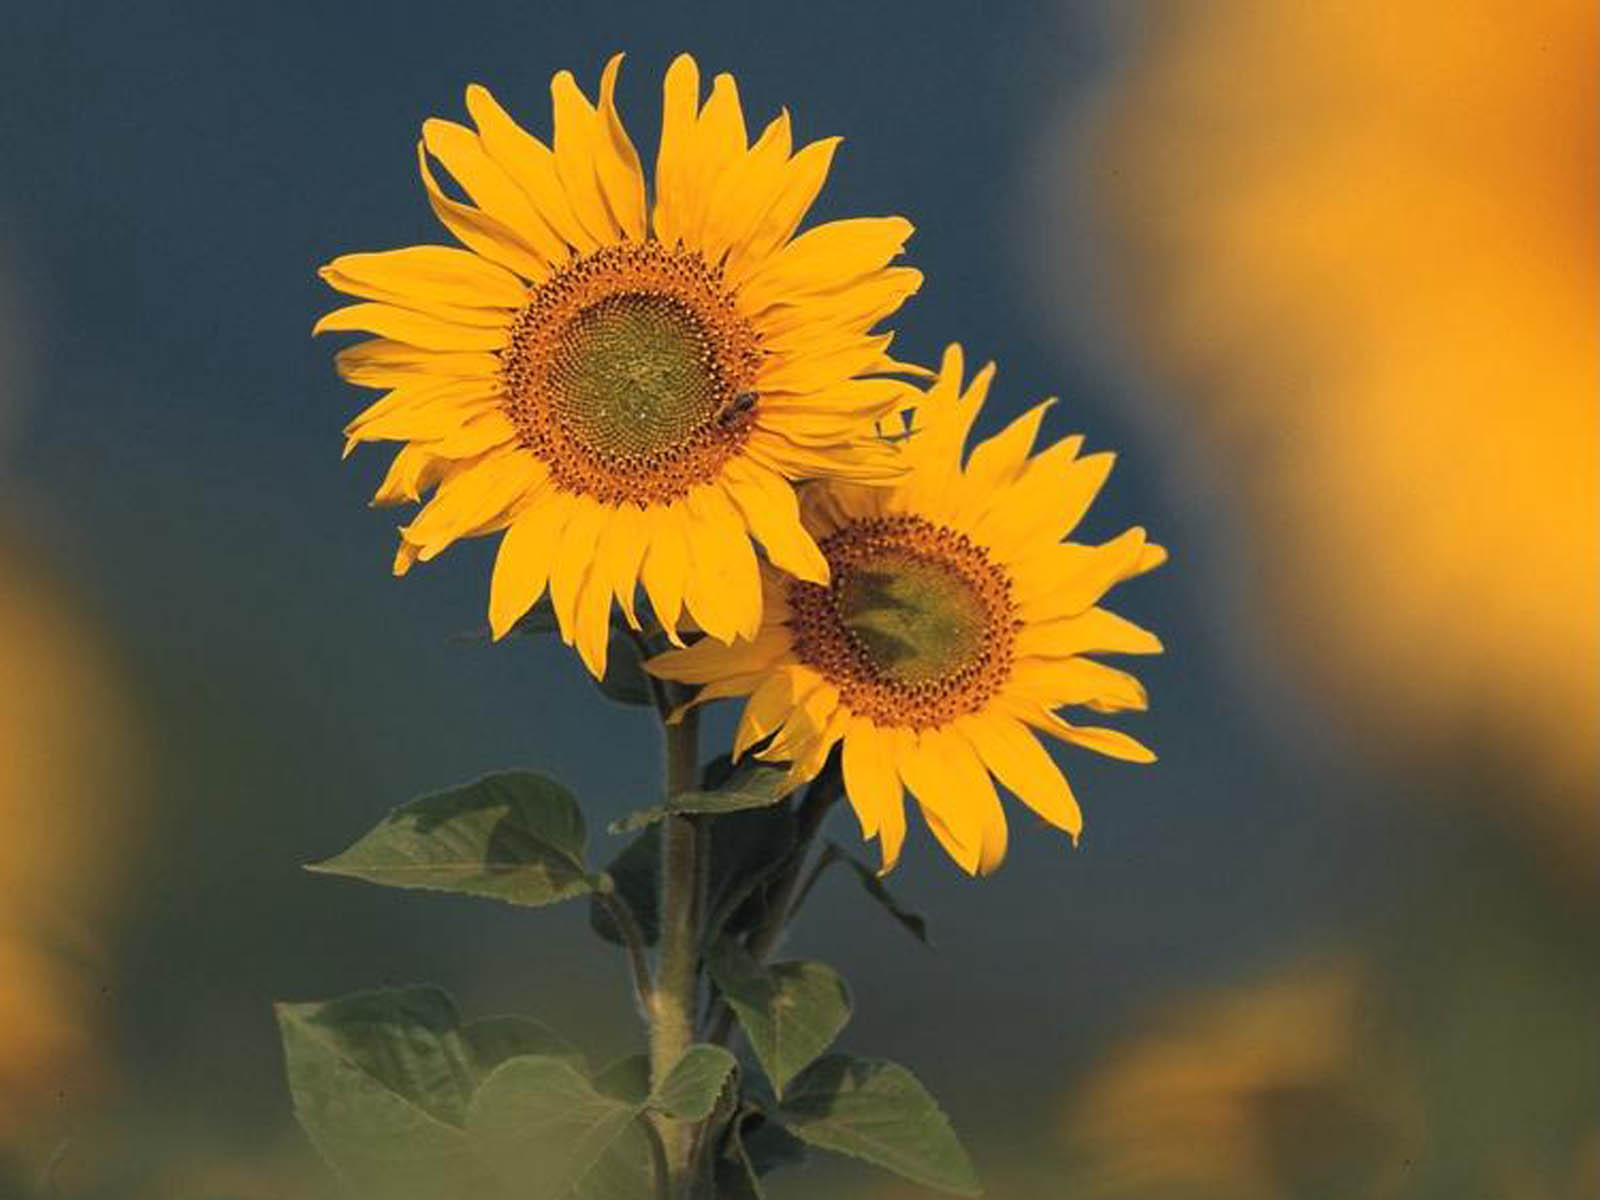 Sunflower desktop wallpaper wallpapersafari - Desktop wallpaper 1600x1200 ...